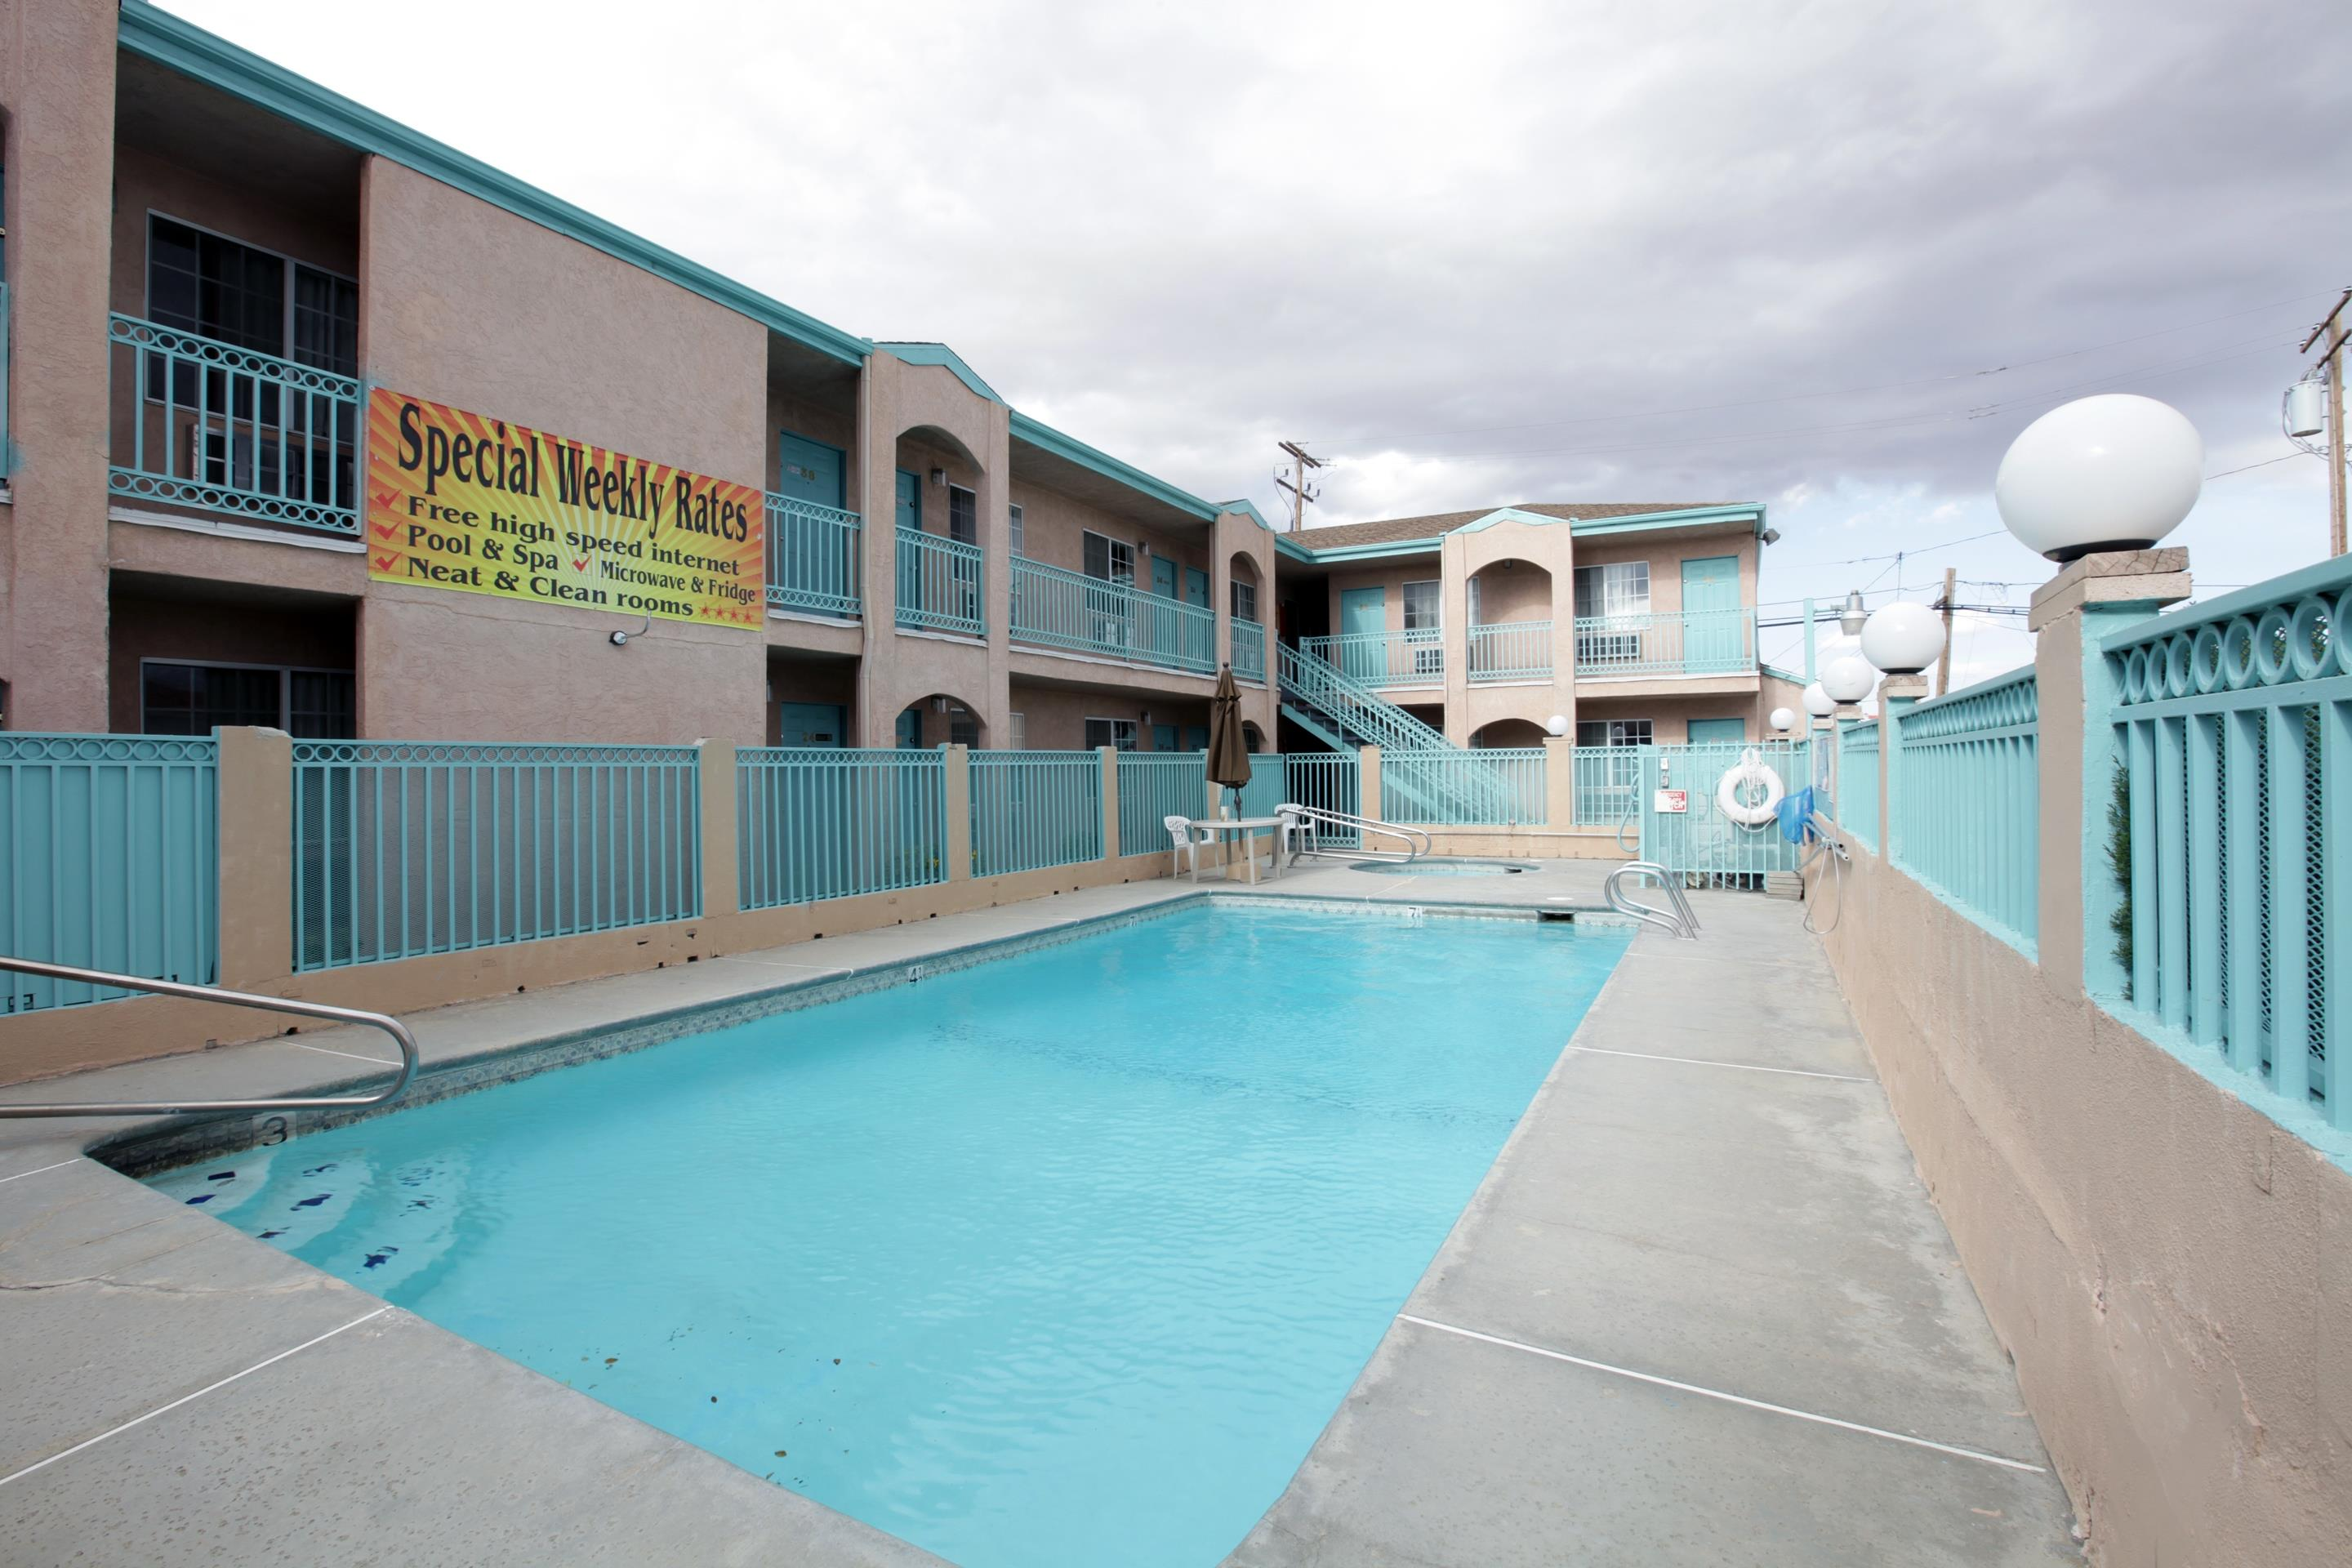 Americas best value inn mojave coupons near me in mojave for Americas best coupons